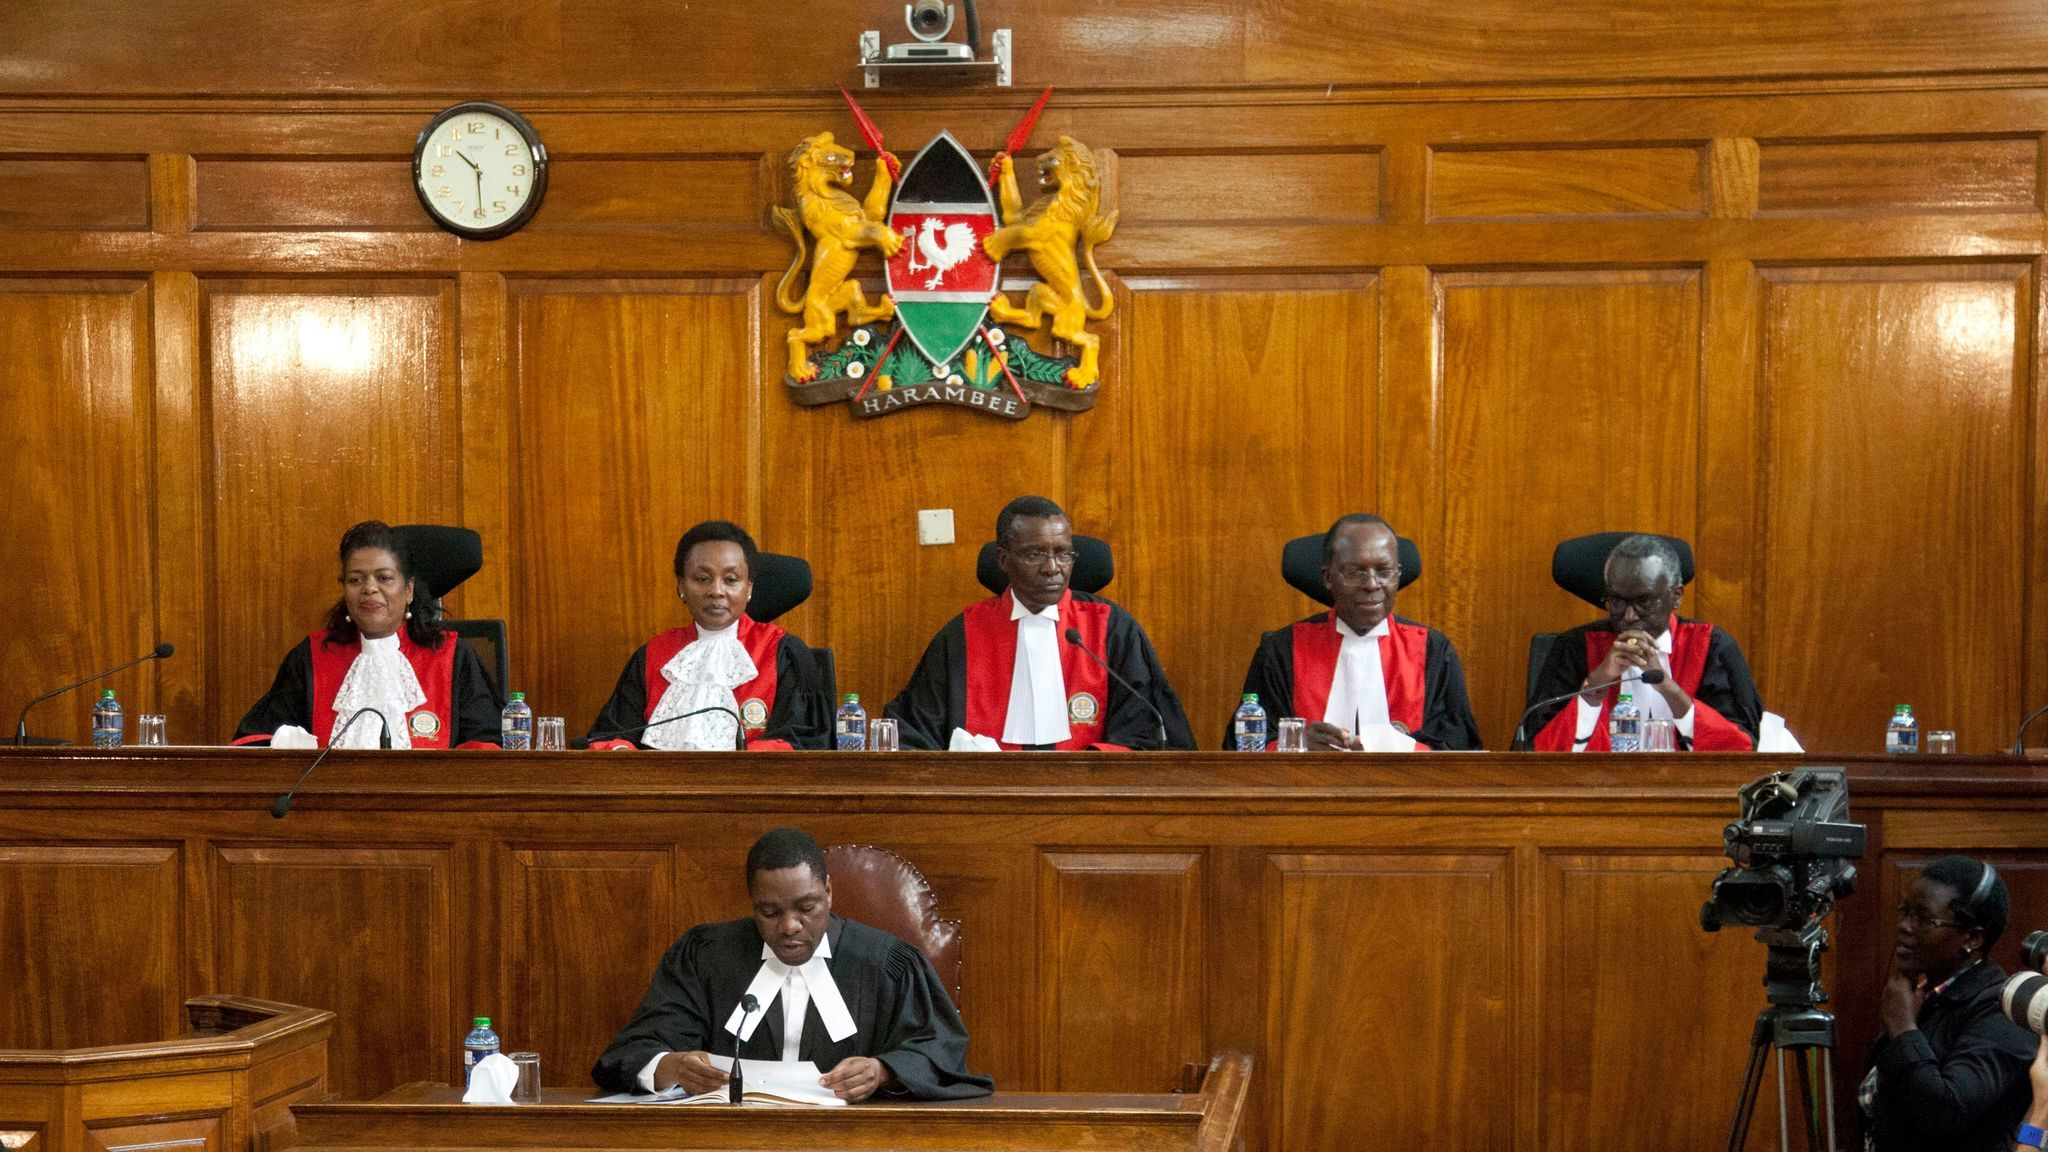 Kenyan Supreme Court judges, from left, Njoki Ndung'u, Deputy Chief Justice Philomela Mwilu, Chief Justice David Maraga, Jackton Ojwang and Isaac Lenaola prepare to deliver their reasons for invalidating the Aug. 8 presidential election.